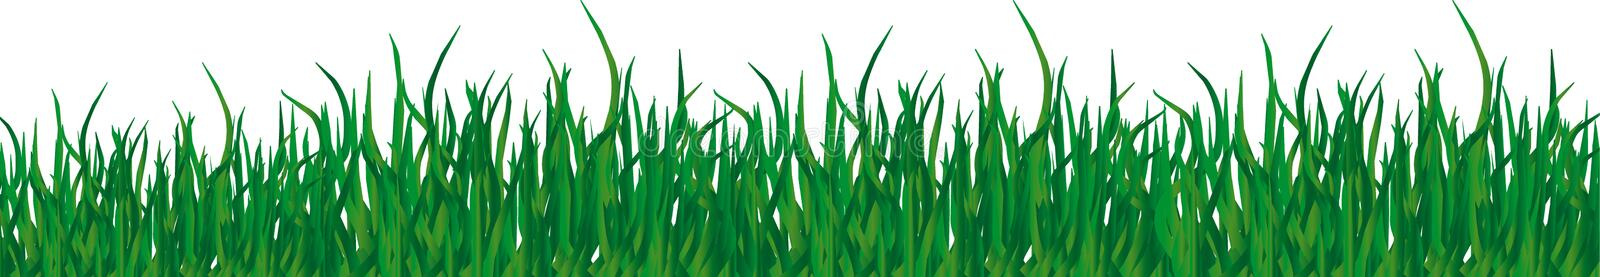 Herbe illustration stock